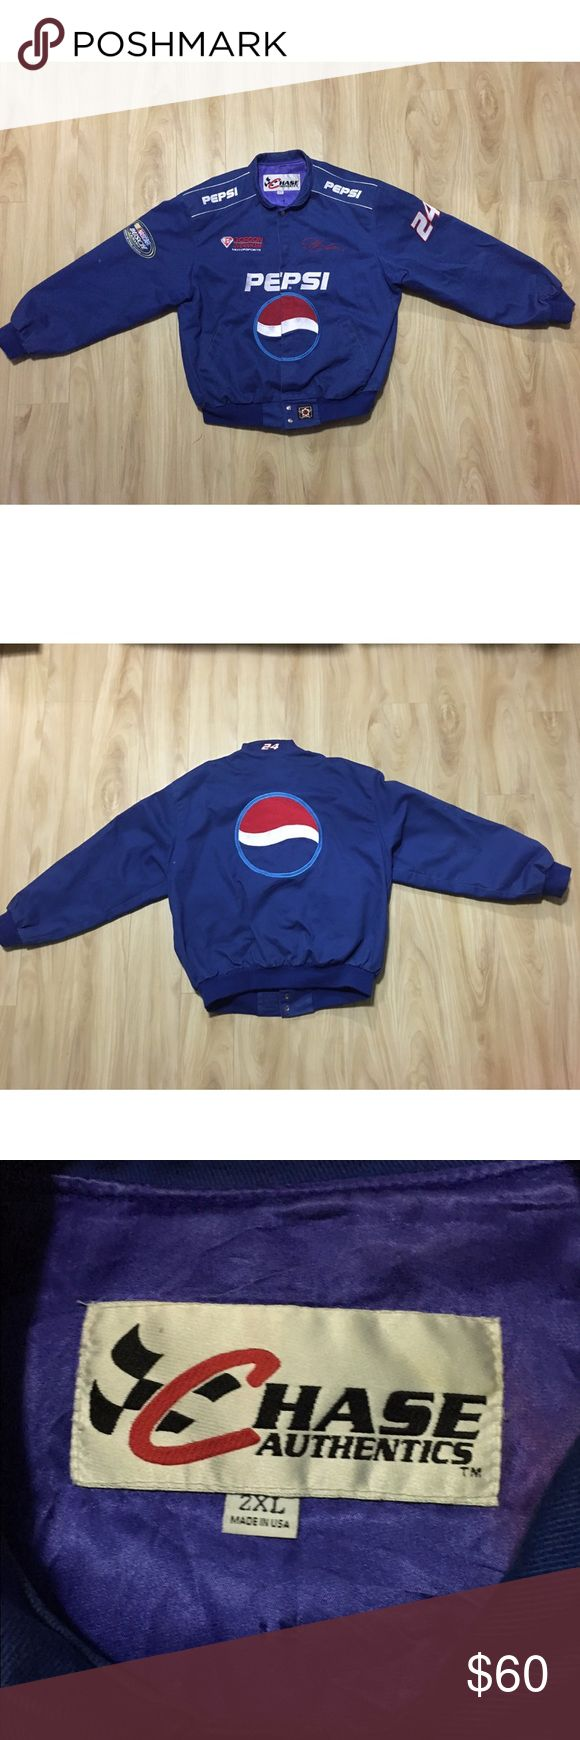 Chase Pepsi NASCAR jacket Sz 2xl Jacket is used in good condition, no rips or tears, does show normal signs of wear, nothing bad, comes from smoke free pet free home. Don't miss out on this great deal chase  Jackets & Coats